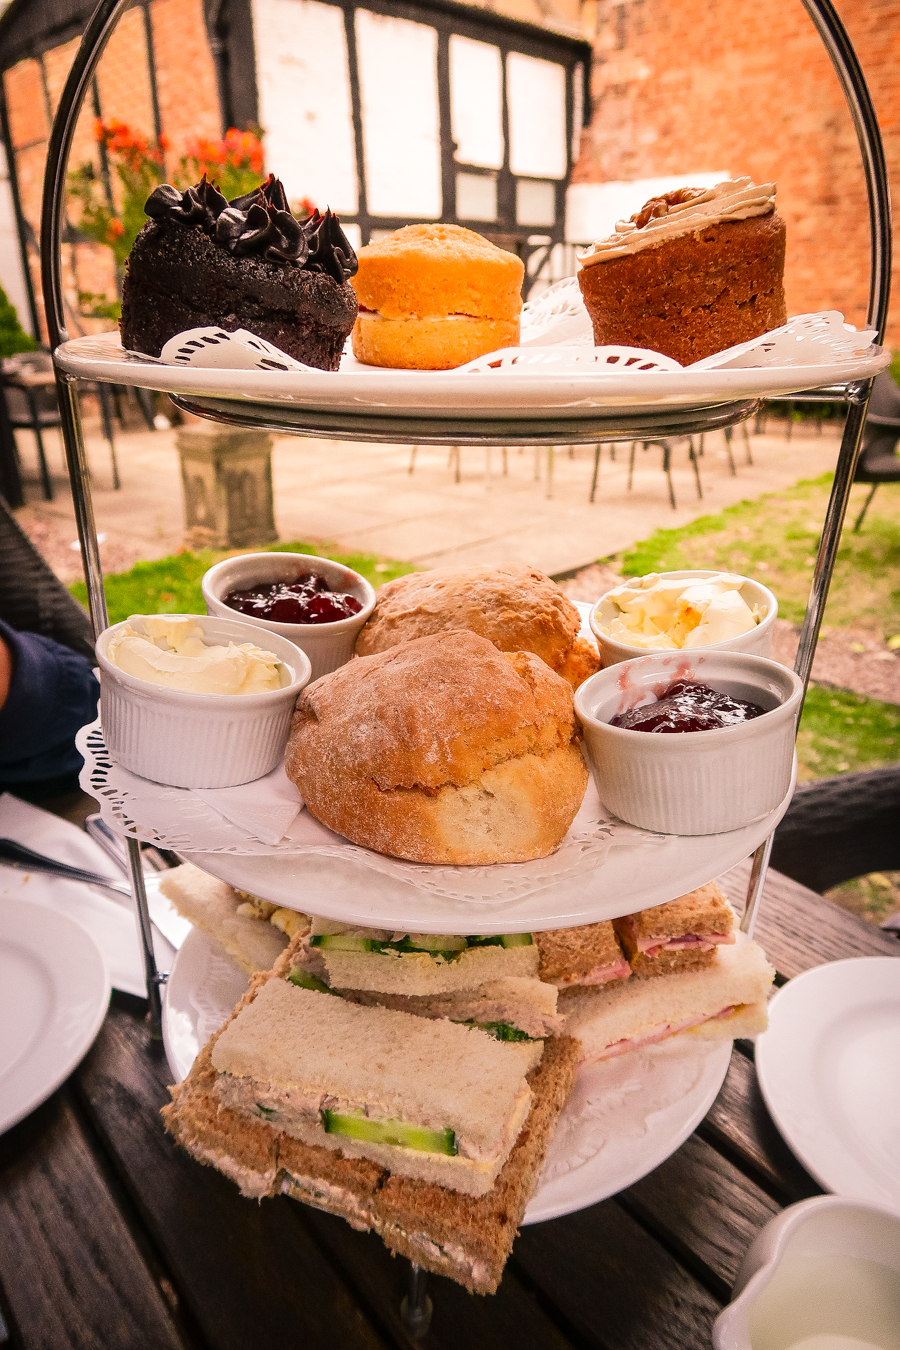 Midsummer's Day Dream - Afternoon Tea at Hathaway Tea Rooms